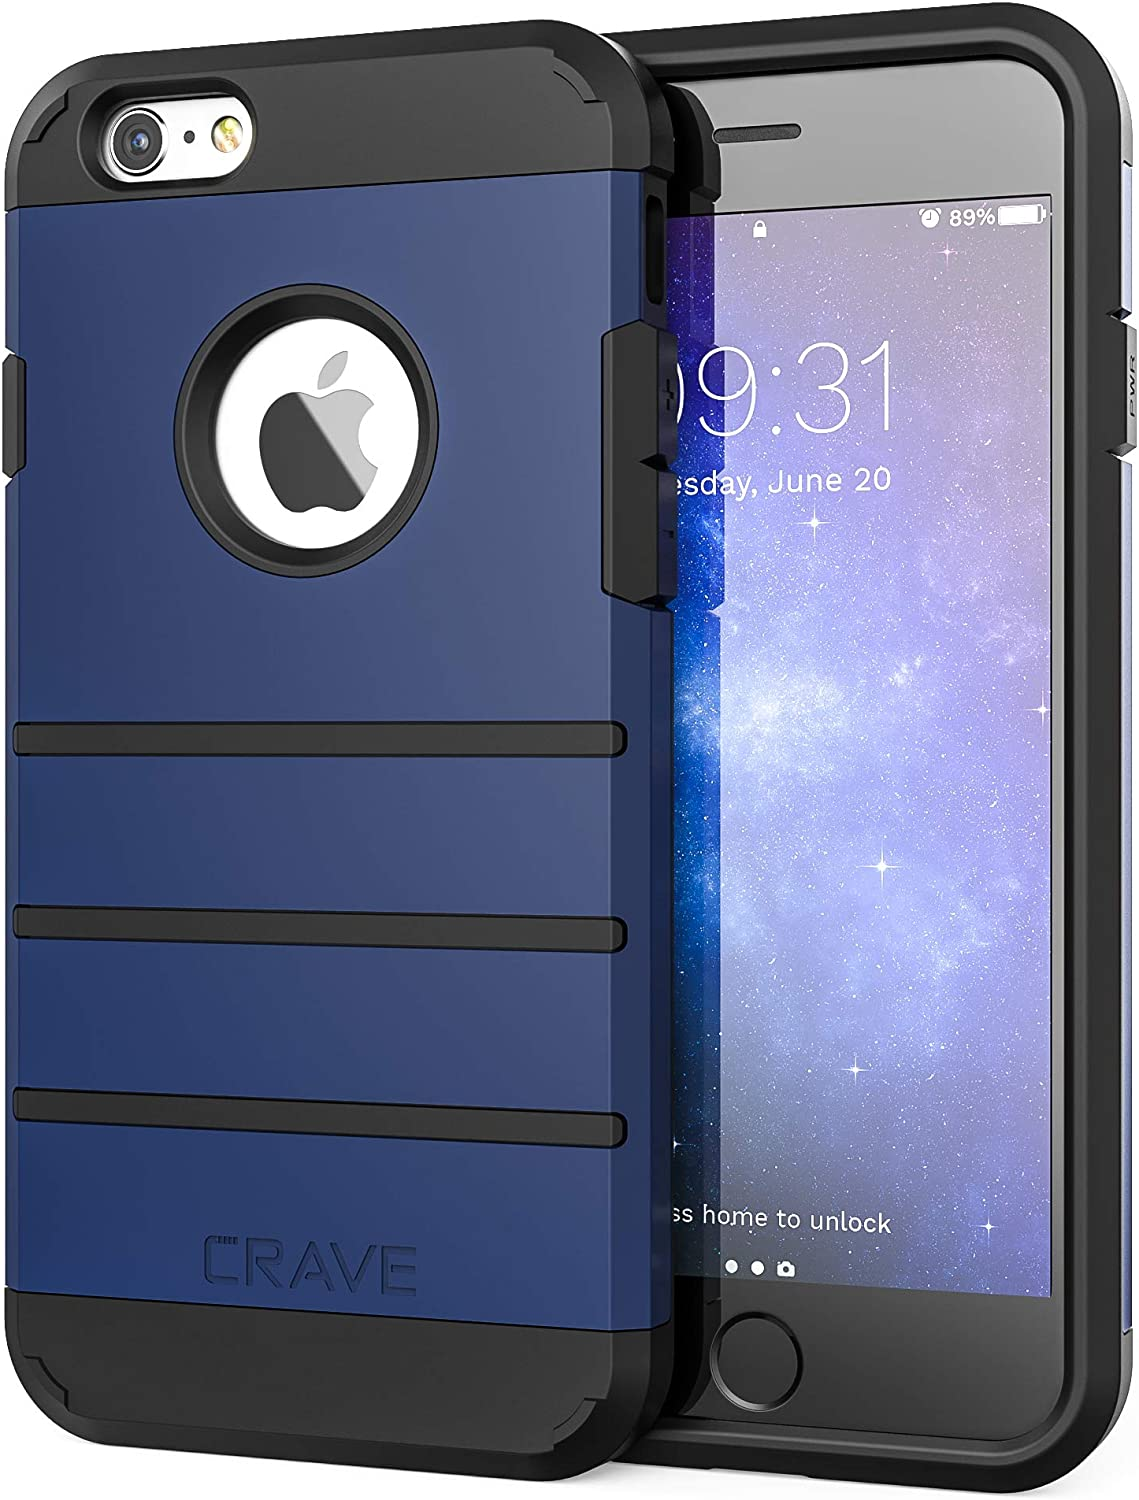 Crave iPhone 6S Case, iPhone 6 Case, Strong Guard Protection Series Case for Apple iPhone 6 6s (4.7 Inch) - Navy